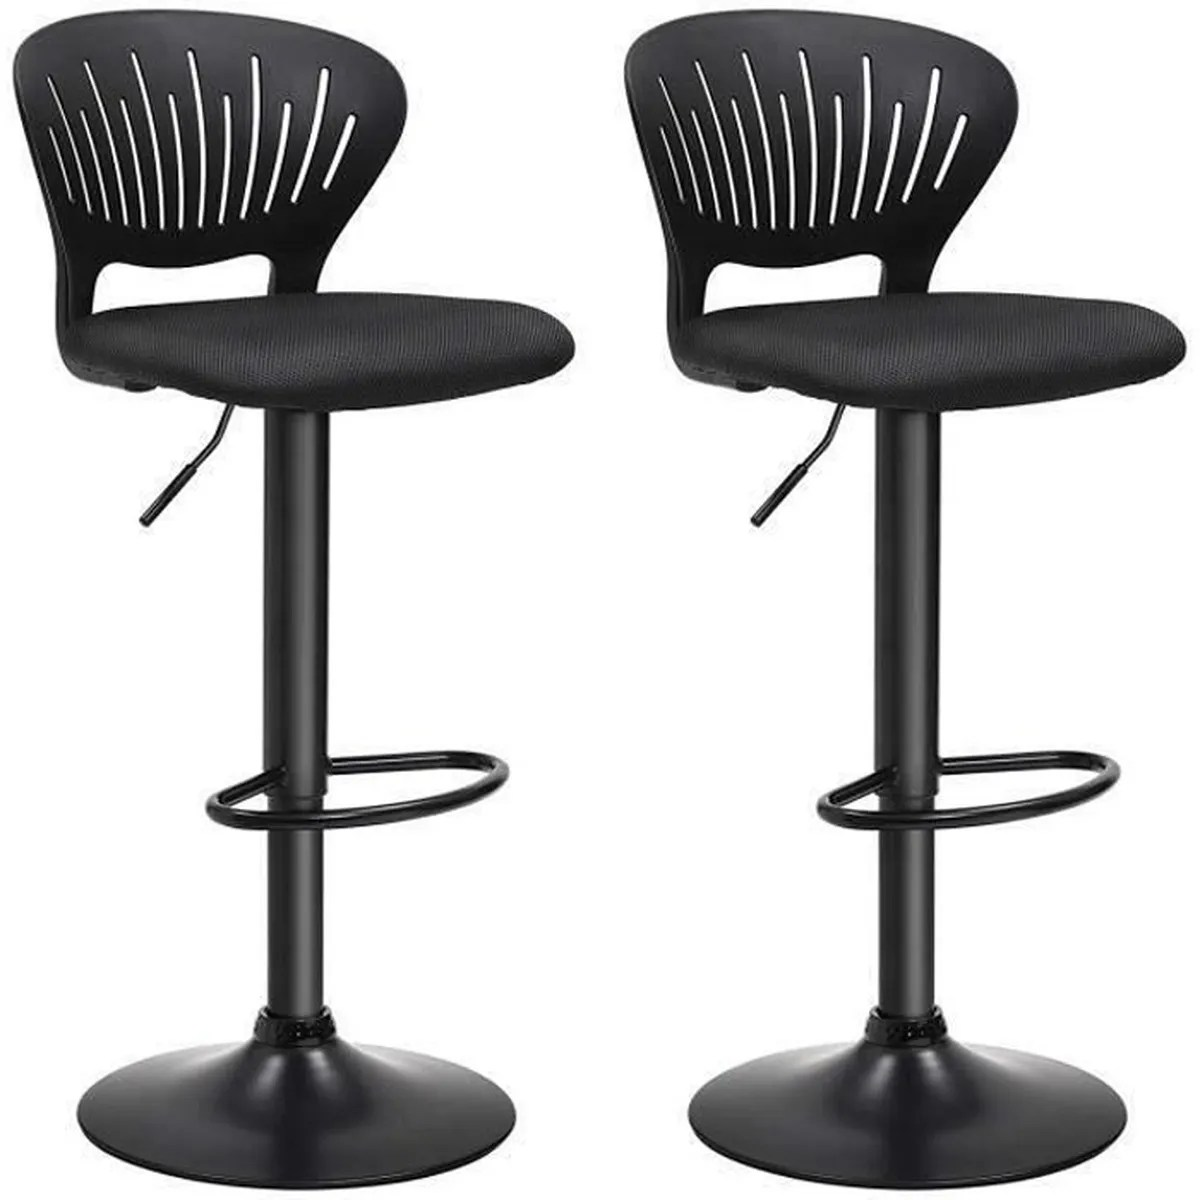 Songmics Lot De 2 Tabourets De Bar Stool Songmics Lot De 2 Tabourets De Bar Hauteur Réglable 85 107 Cm